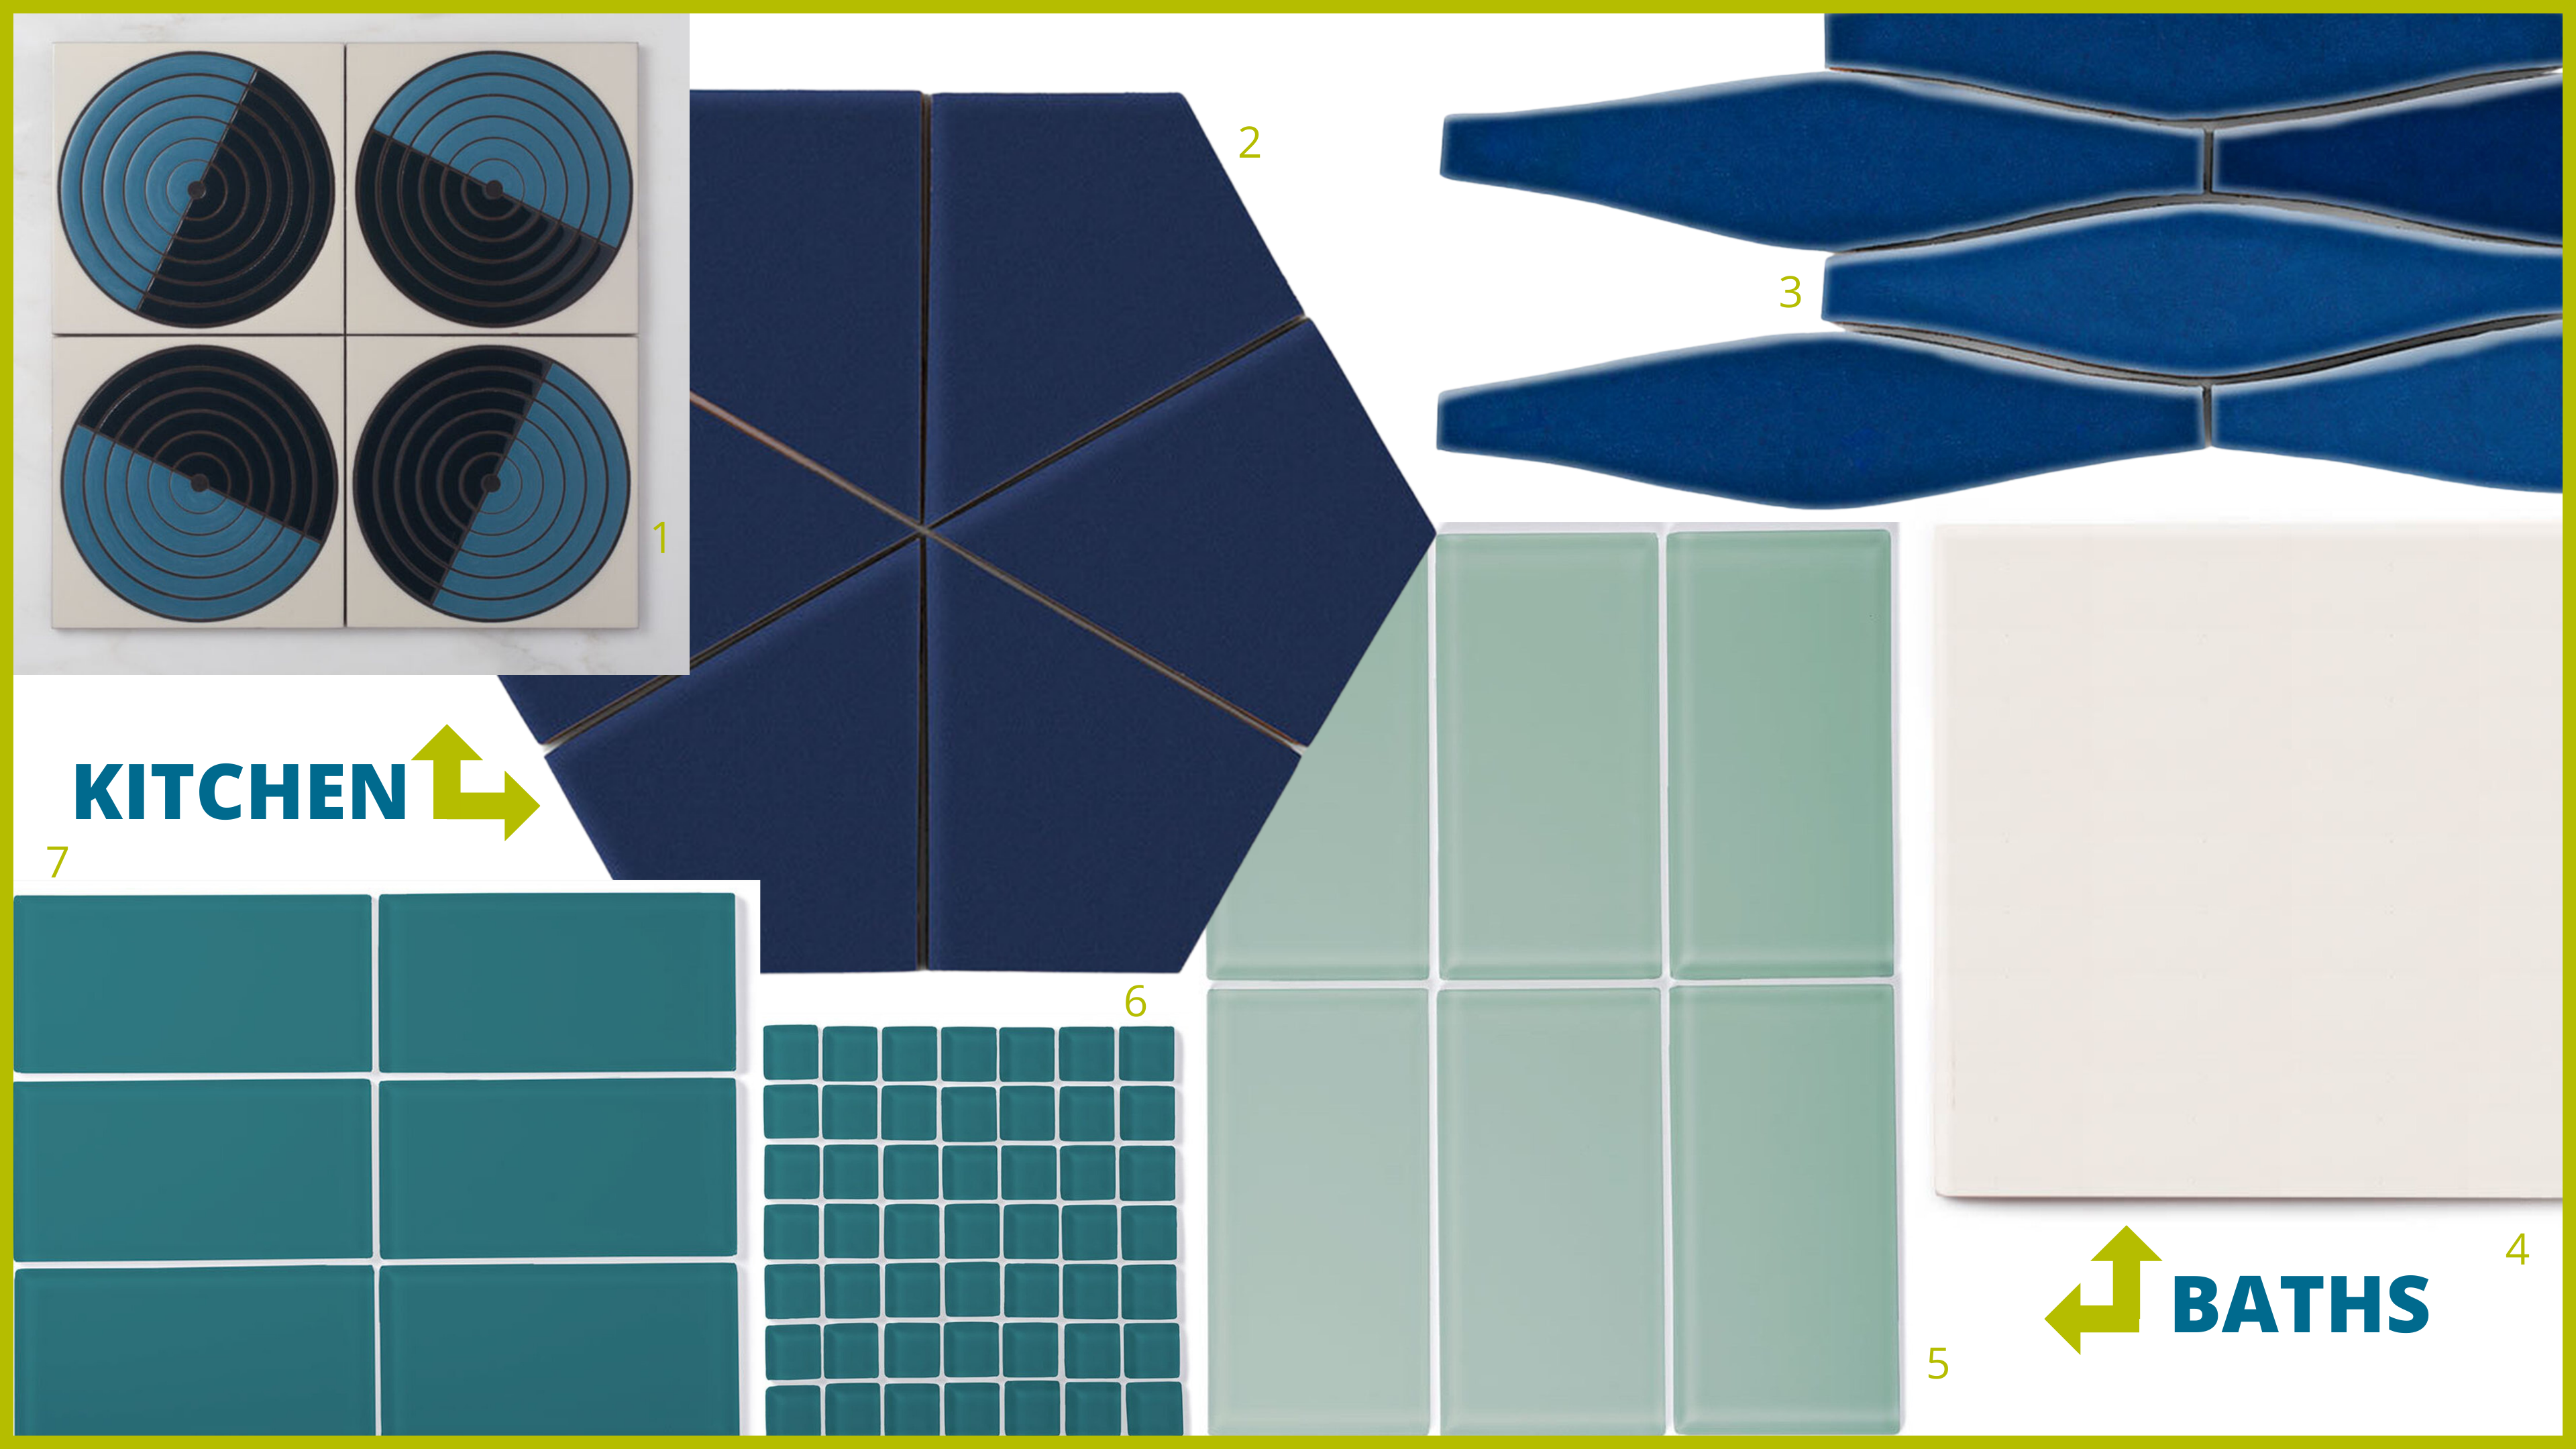 blue and white tiles, Fireclay Tile handmade tiles, Maze in Warm otif, Hexite, Wave, Tusk, Kingfisher, Magpie mosaic